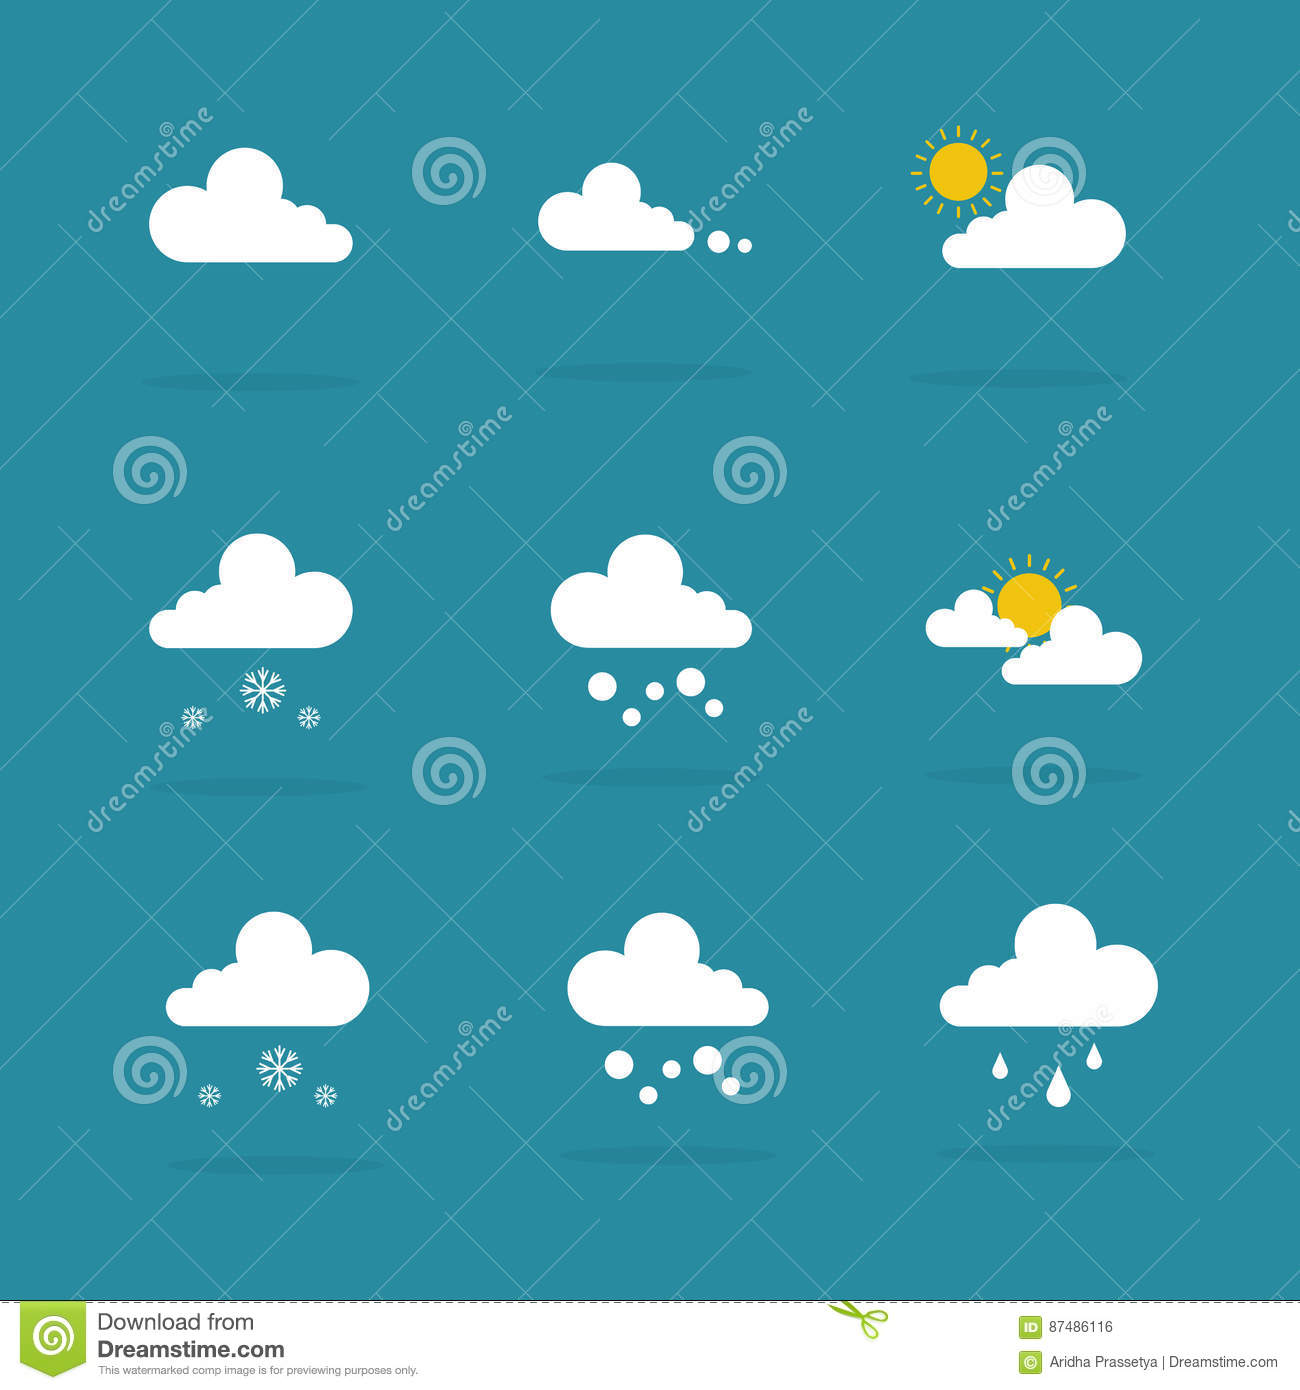 Weather set icon vector illustration